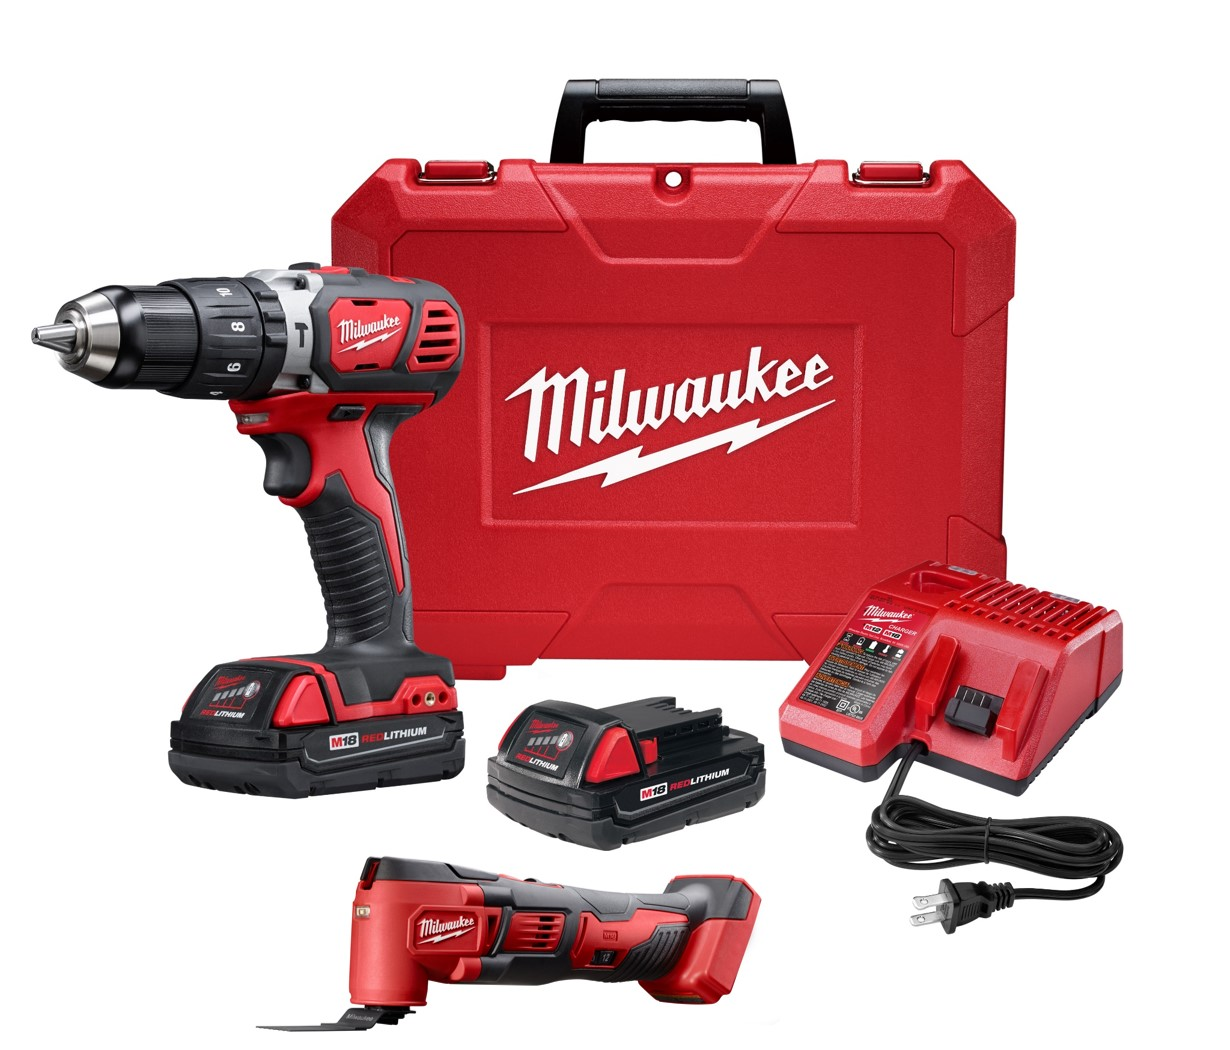 Milwaukee® 2607-22CTM Cordless Hammer Drill/Driver Kit, 1/2 in Metal Single Sleeve Ratcheting Lock Chuck, 18 VDC, 0 to 400/0 to 1800 rpm No-Load